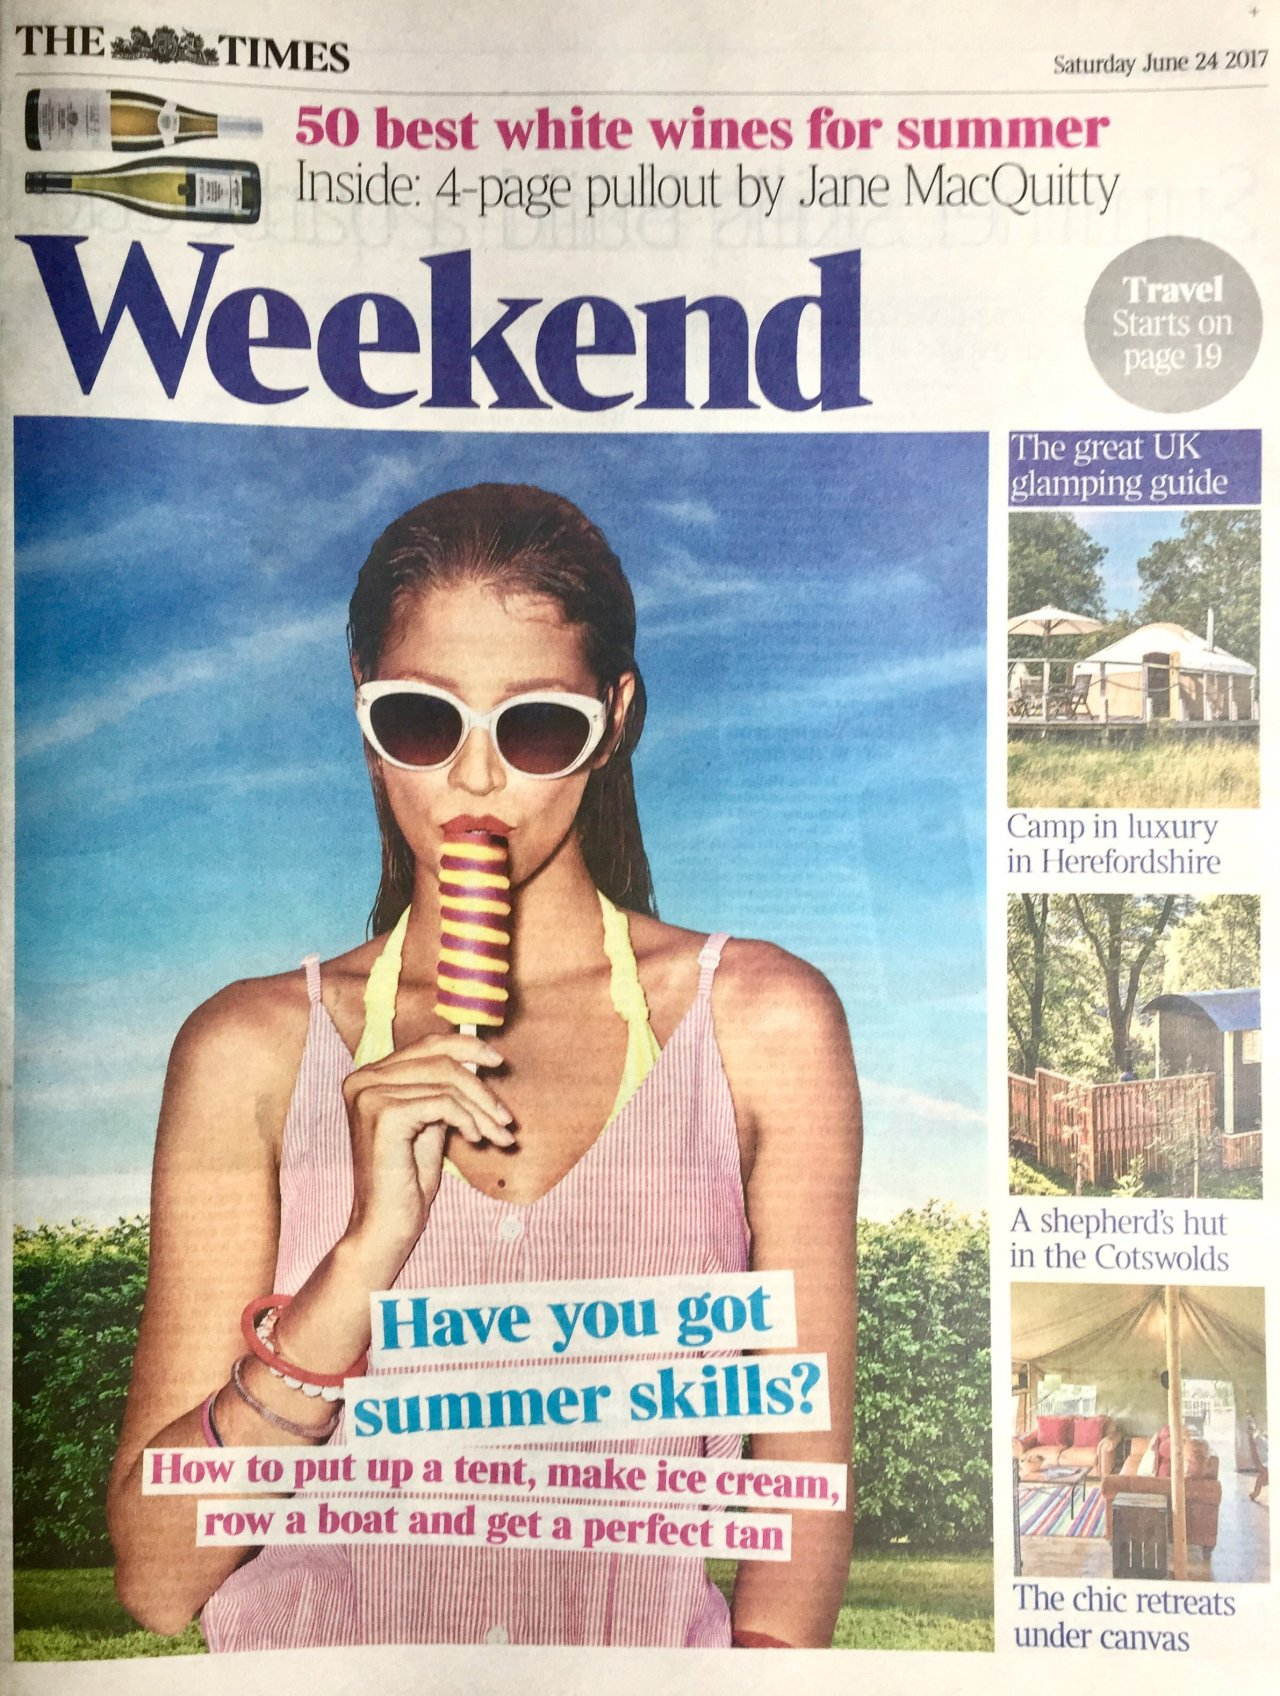 Happy Days glamping in The Times